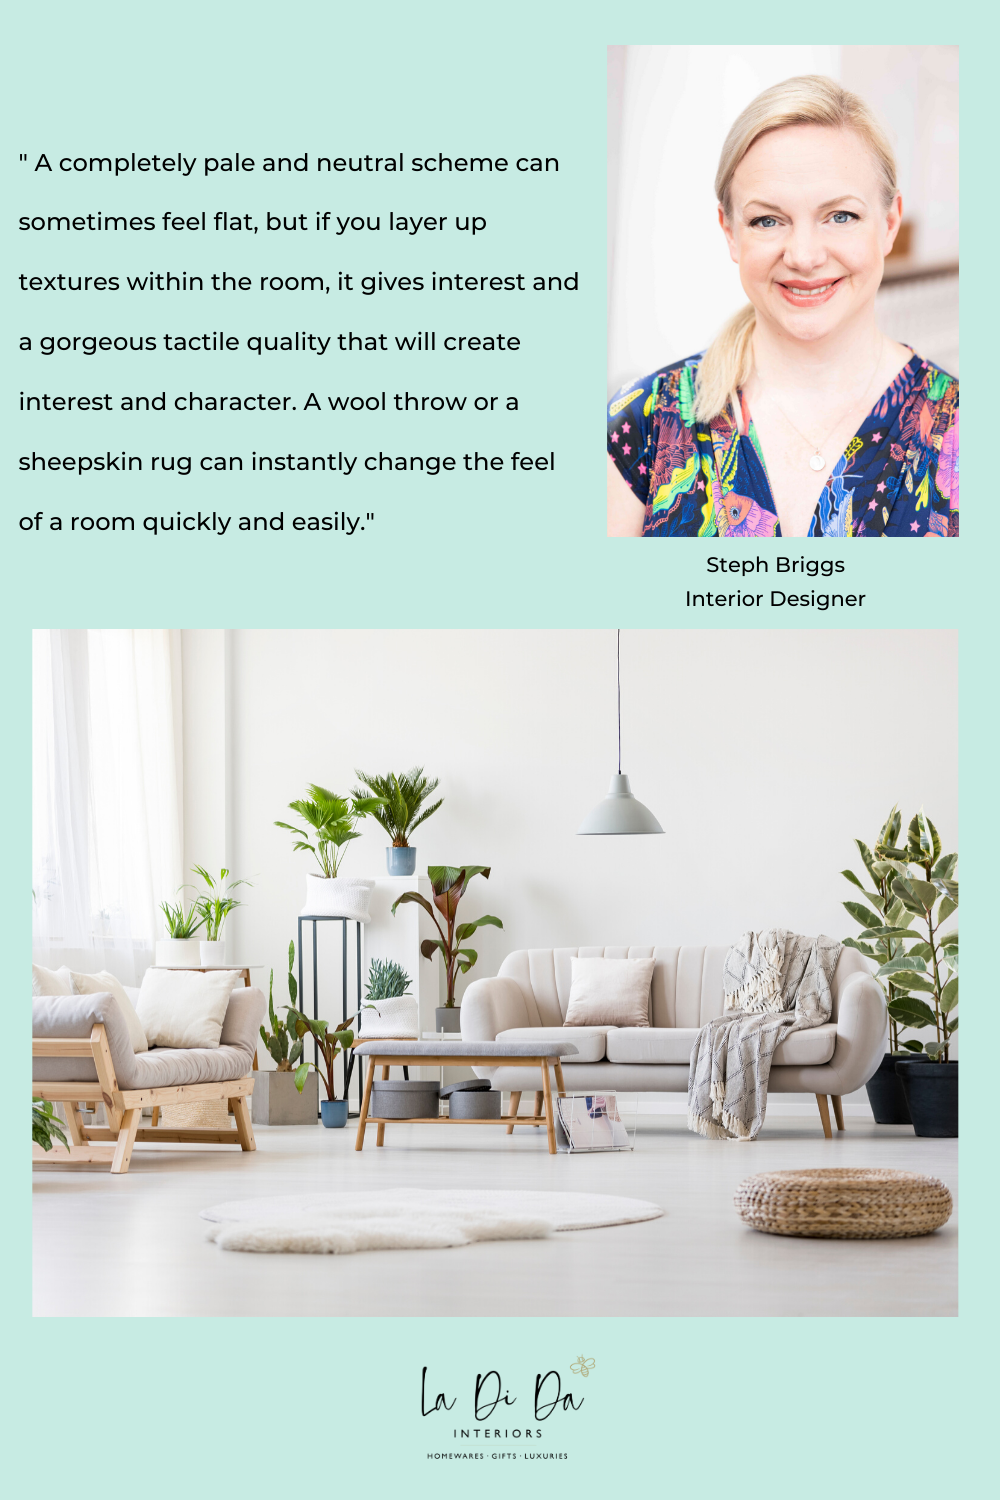 Our MD & Interior Designer Steph shares a top tip for adding warmth to a neutral, cool themed room. To shop interior design inspo, check out our online store. #interiordesigntips #interiordesigninspiration #interiordesigner